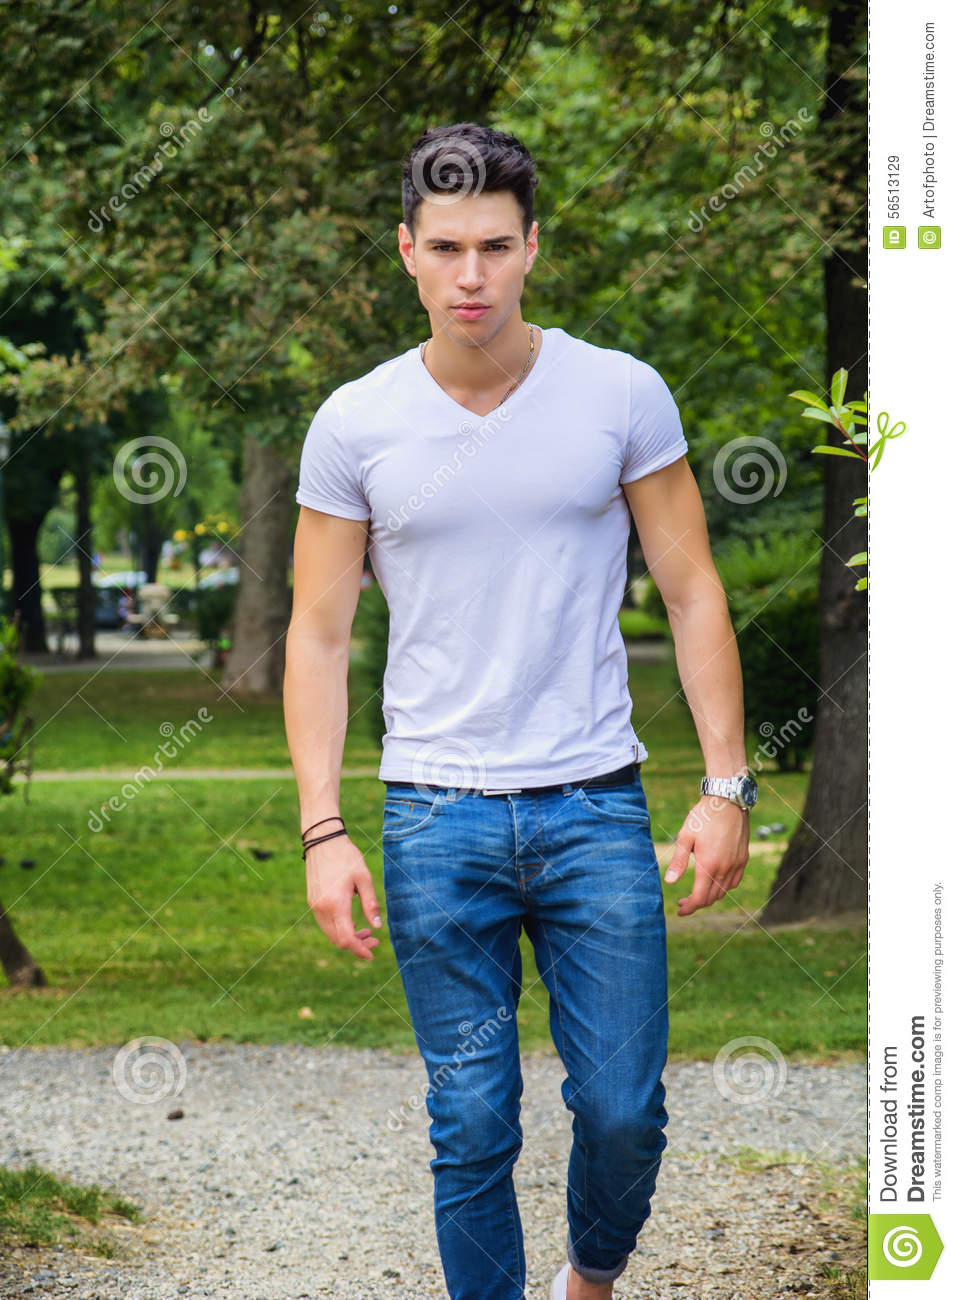 Handsome Young Man In White T-shirt Outdoor In Stock Image - Image of dynamic model 56513129